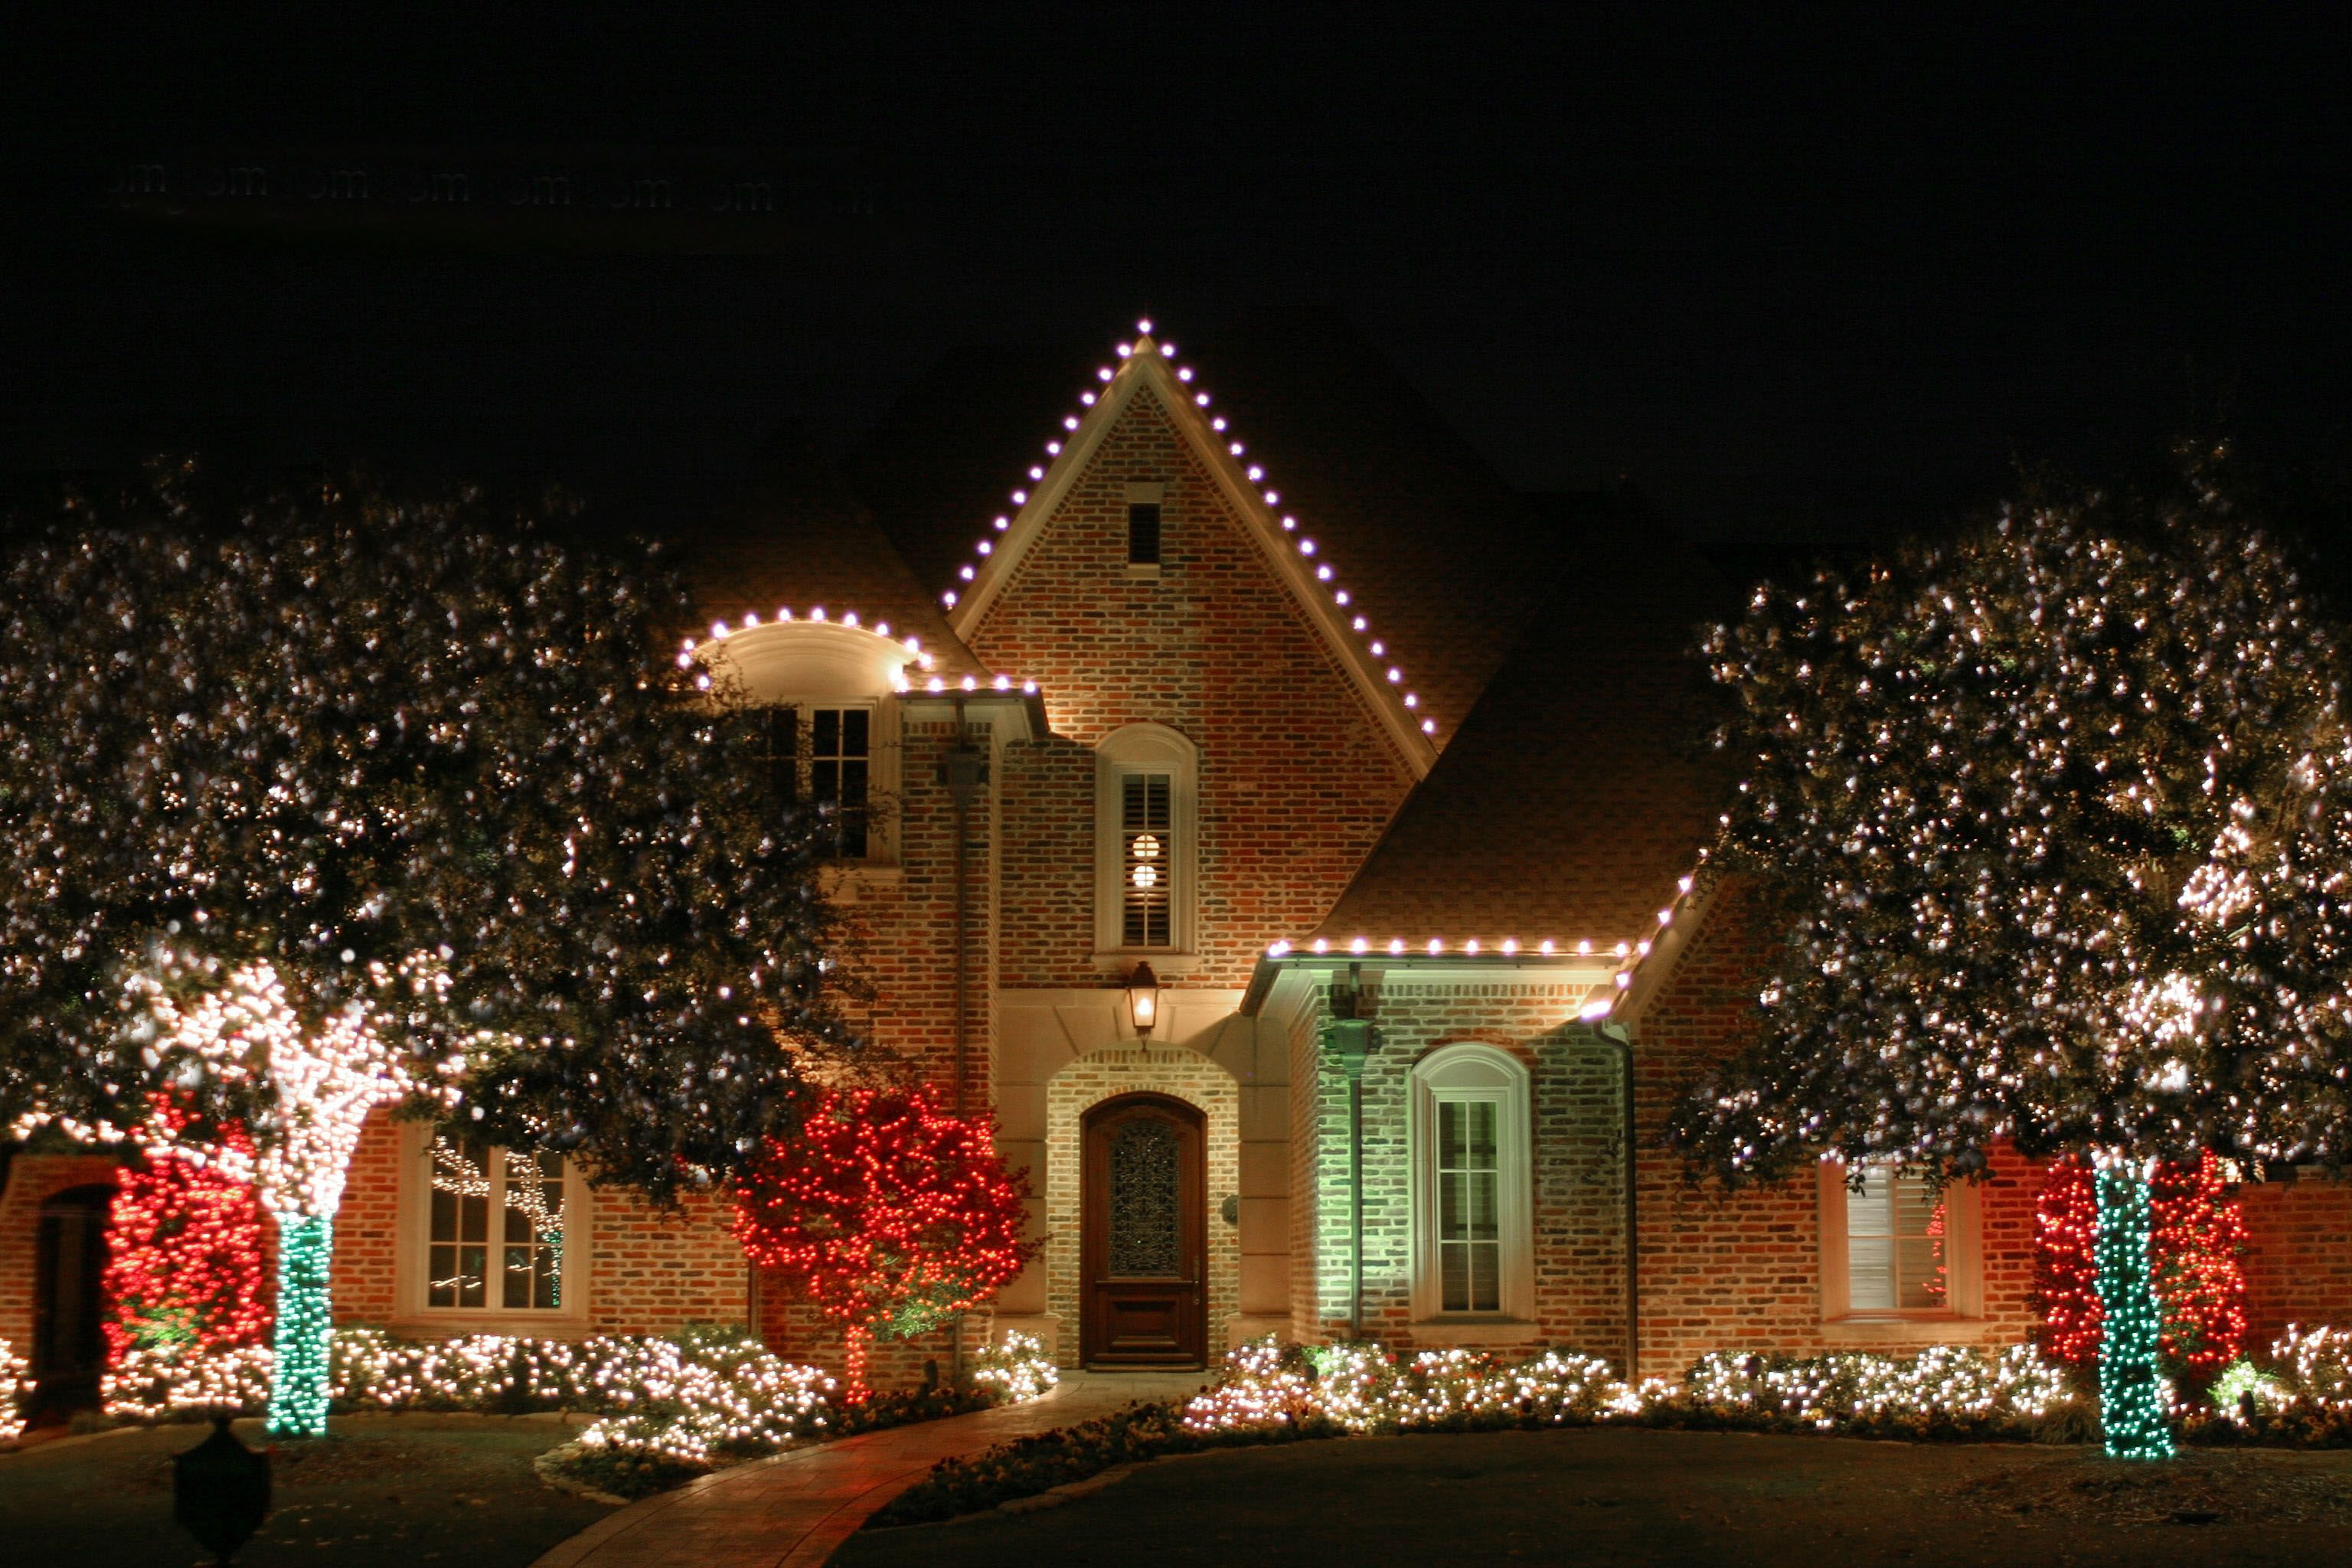 Lawn Pros Christmas Lights Installation. 3773 Cherry Creek